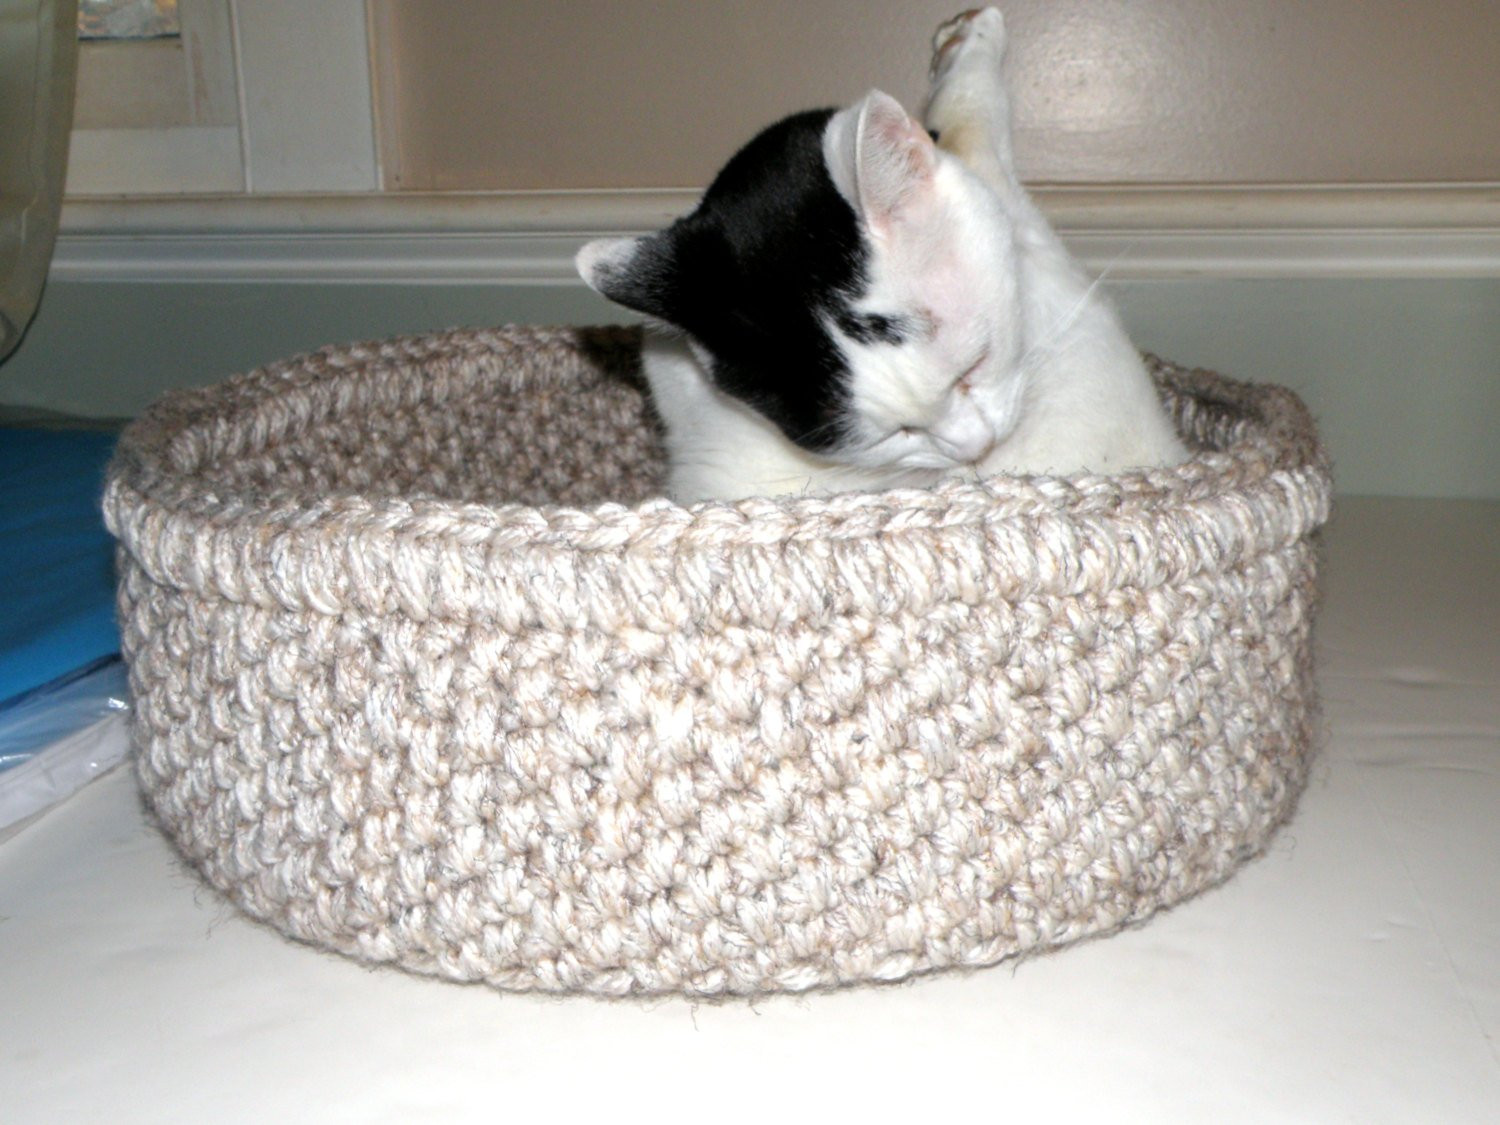 Crochet Dog Beds Best Of Cat Bed Crocheted Travel Pet Bed Round 2 Cat Beds In One Of Charming 50 Ideas Crochet Dog Beds